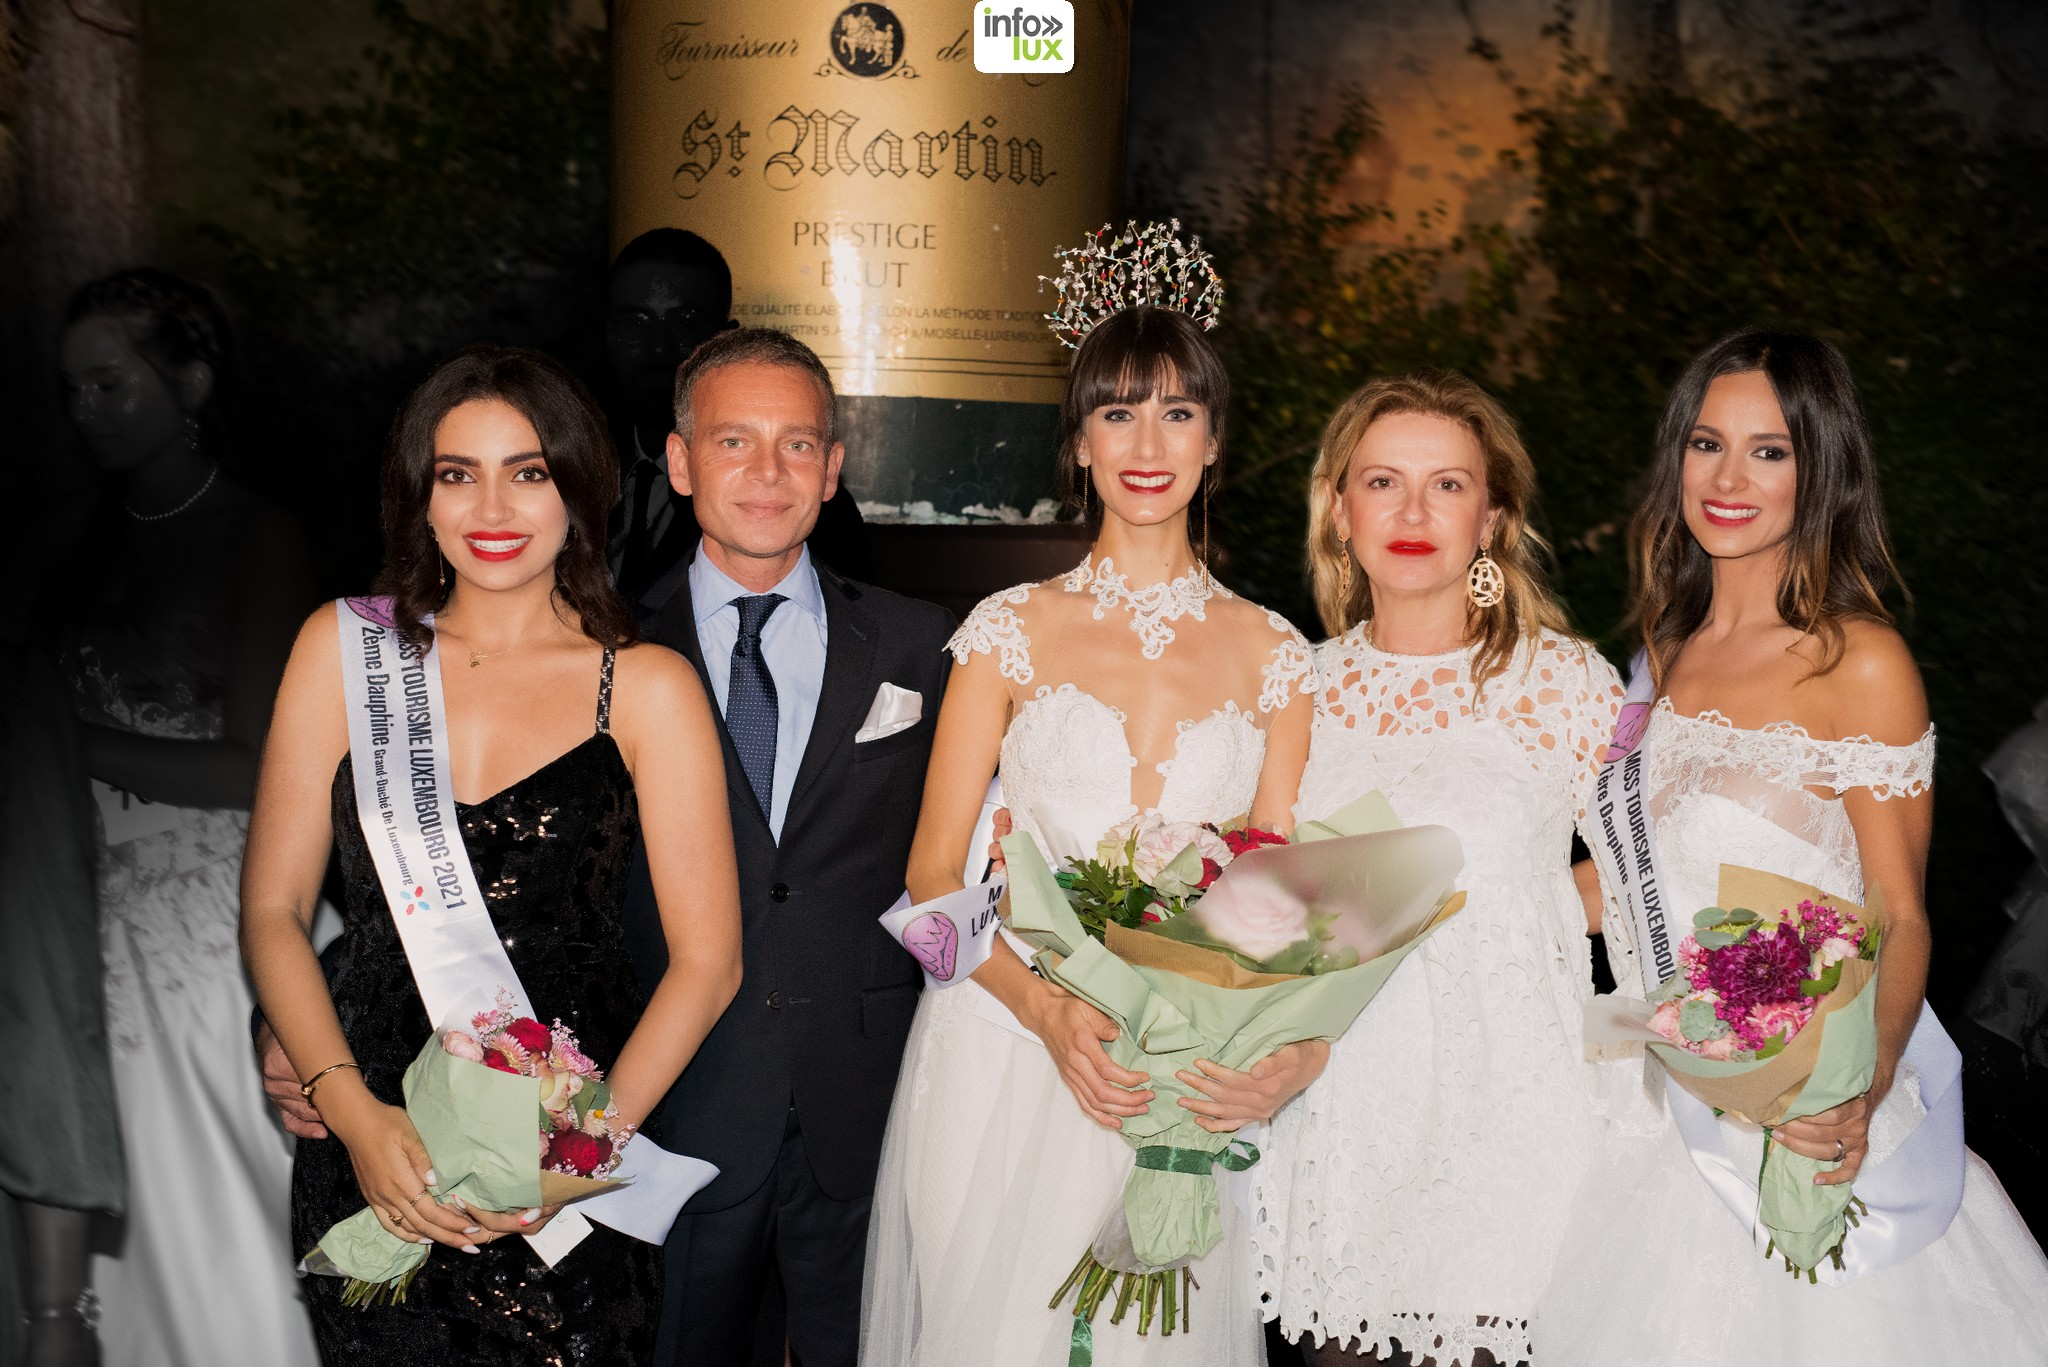 Miss tourisme Luxembourg